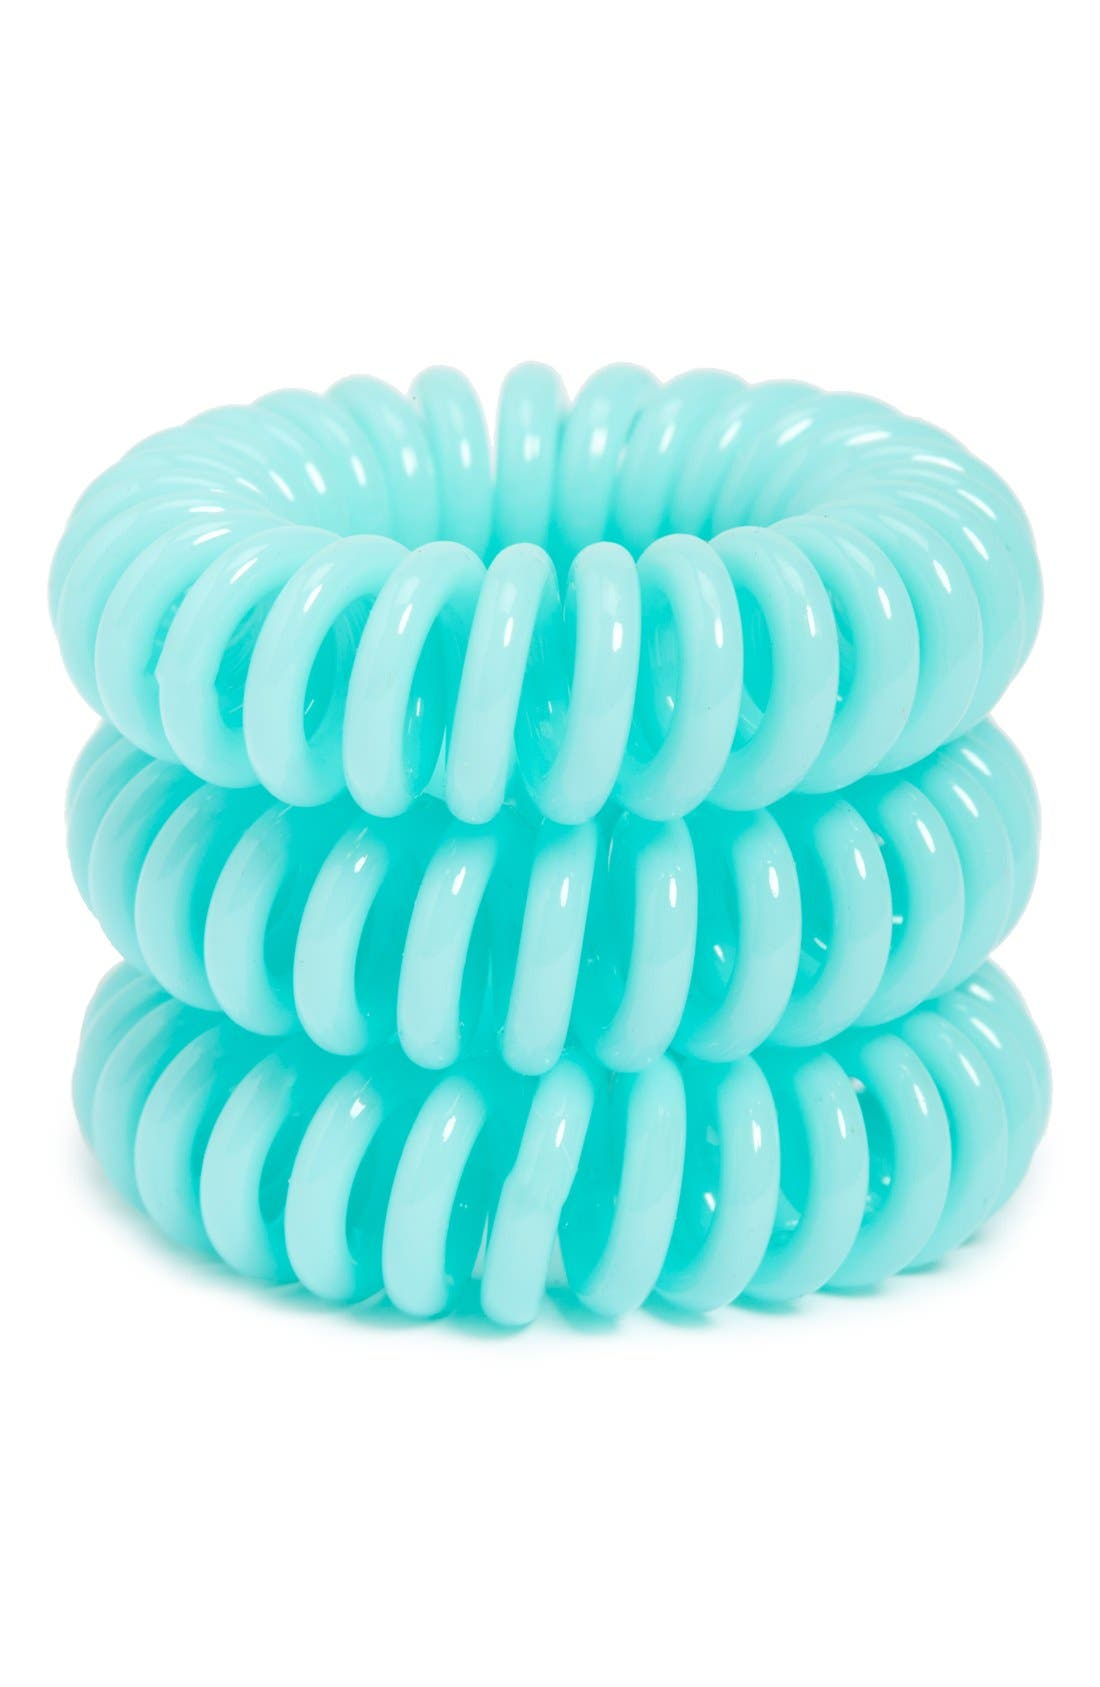 Invisibobble 'Original' Hair Tie (Set of 3)